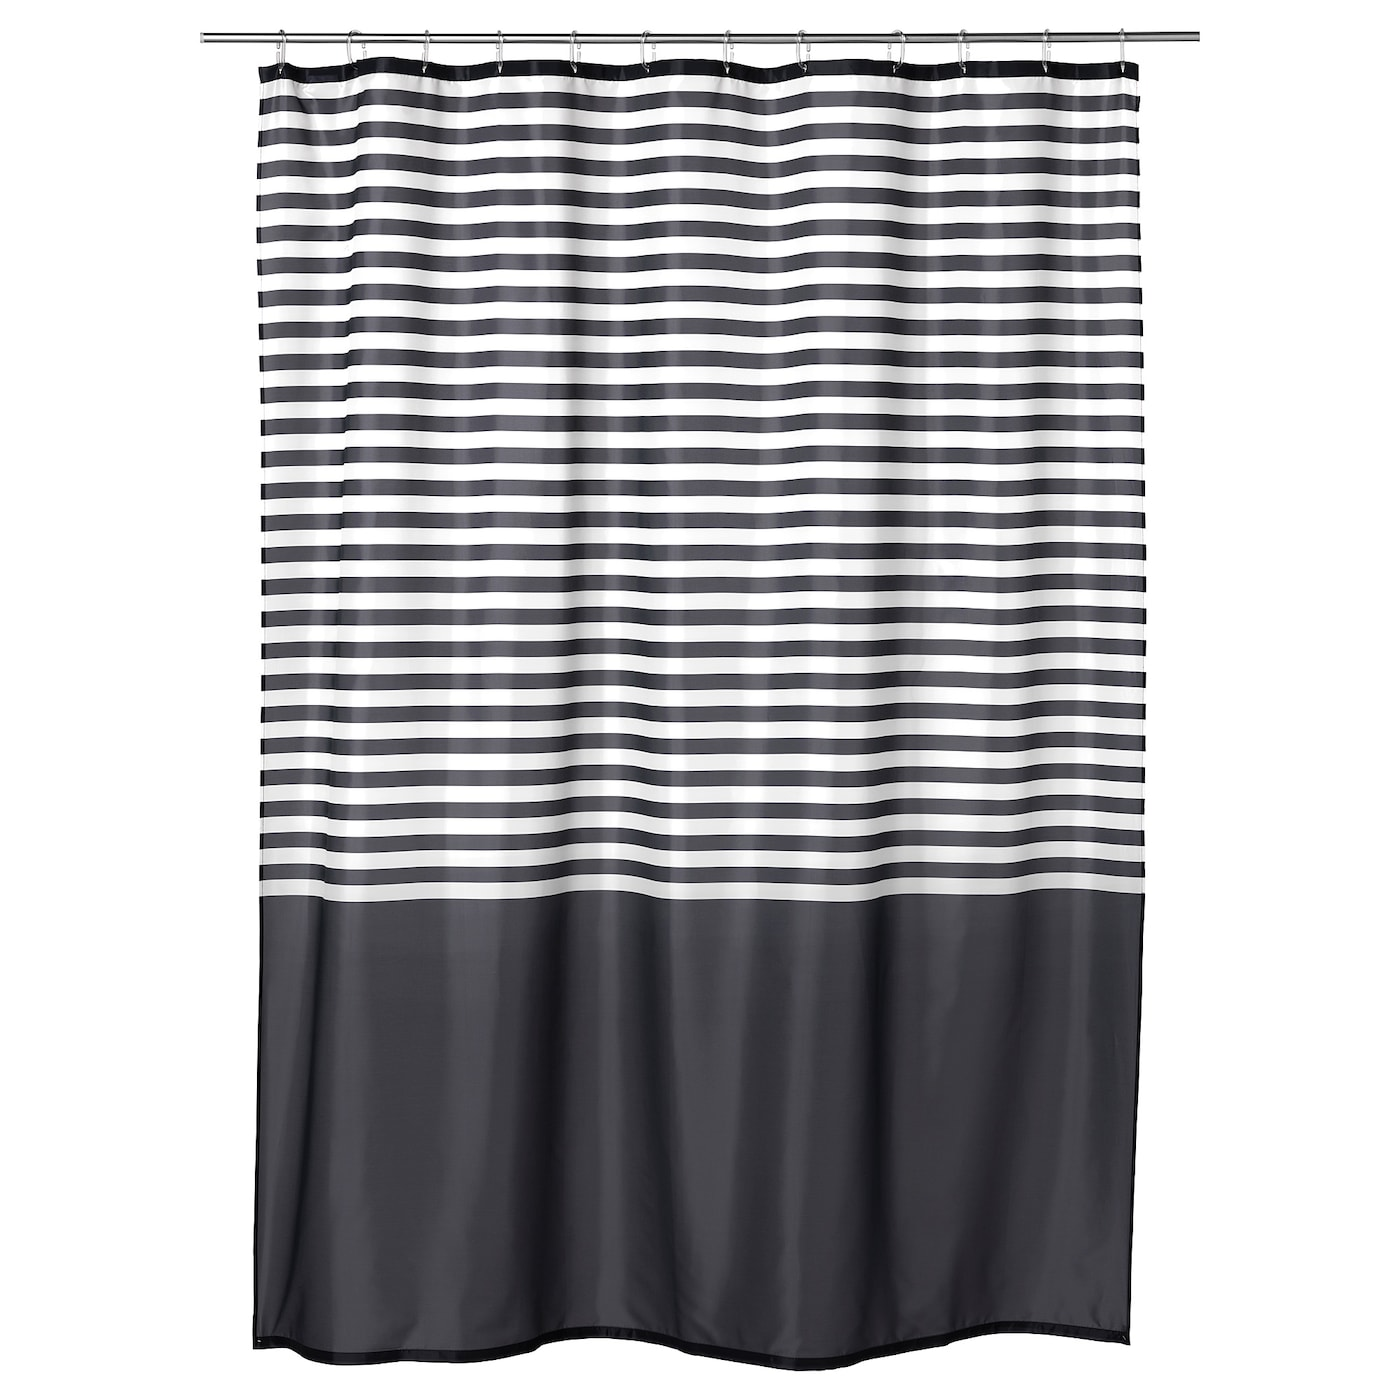 IKEA VADSJÖN shower curtain Densely-woven polyester fabric with water-repellent coating.